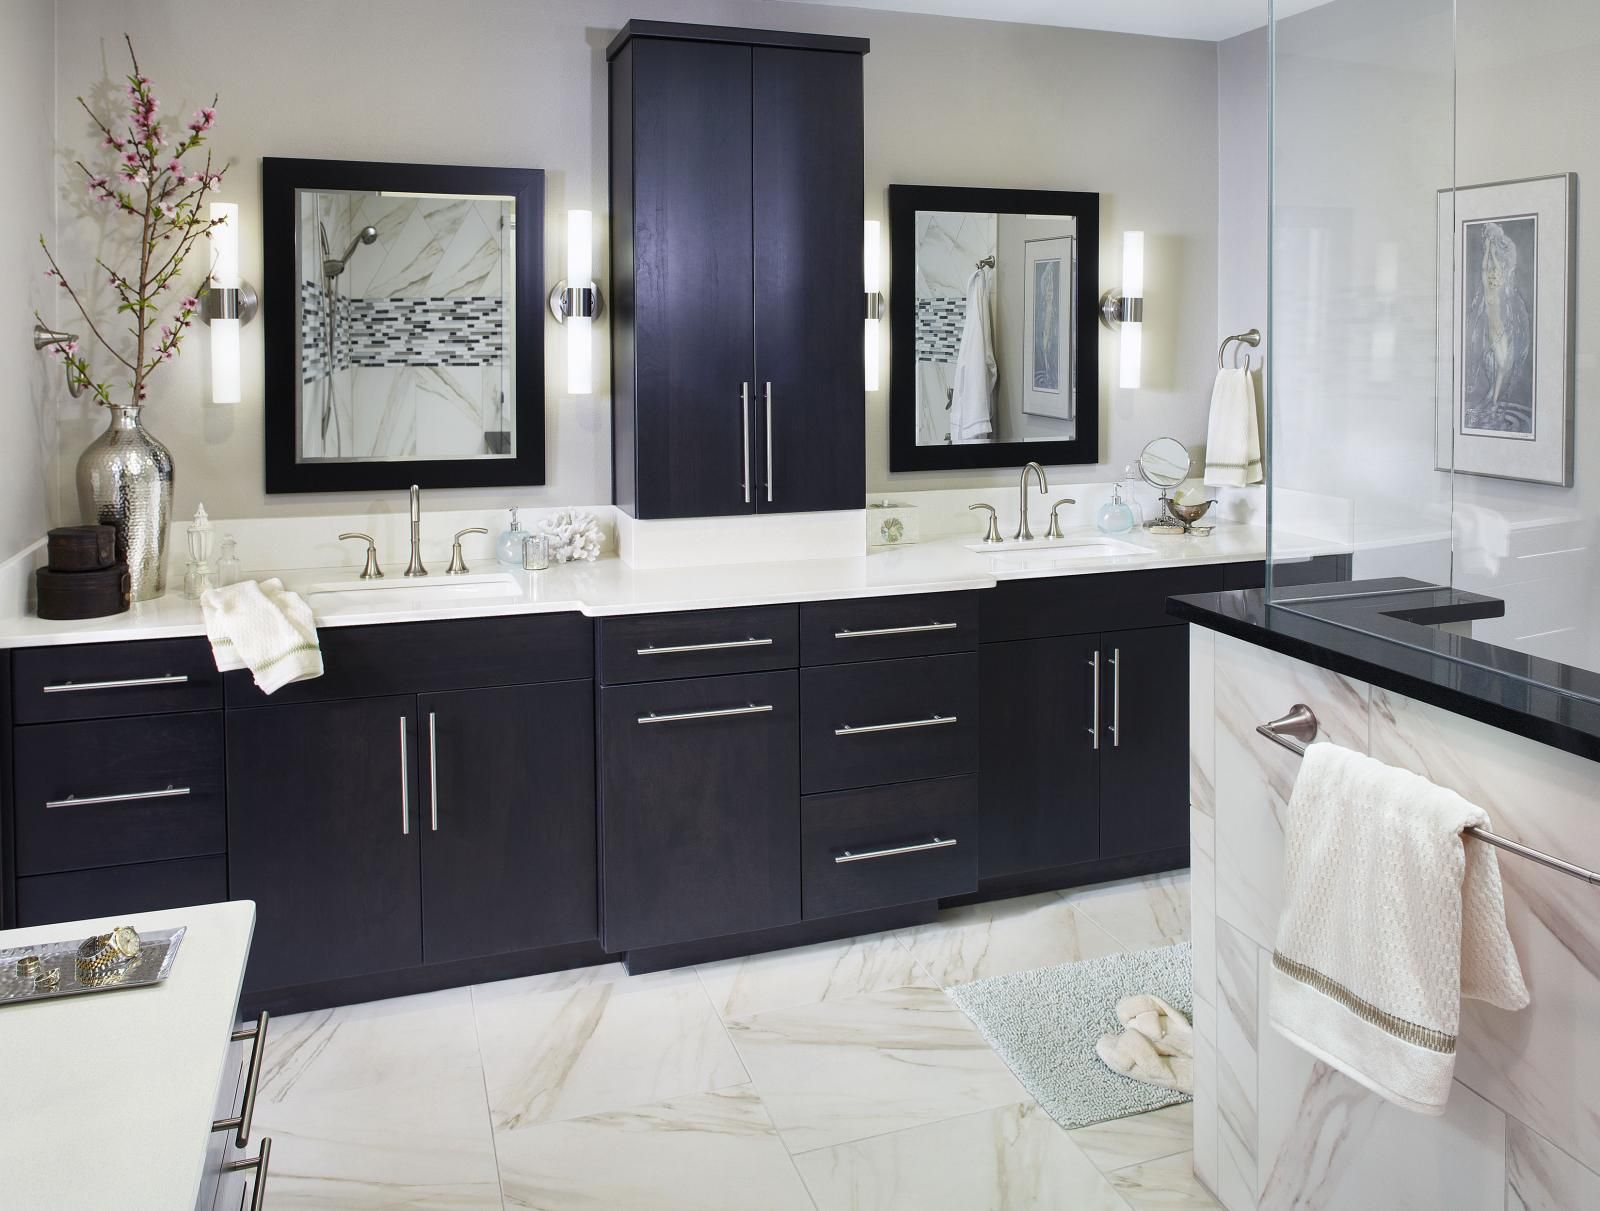 How to design a luxury bathroom with black cabinets | Black ...